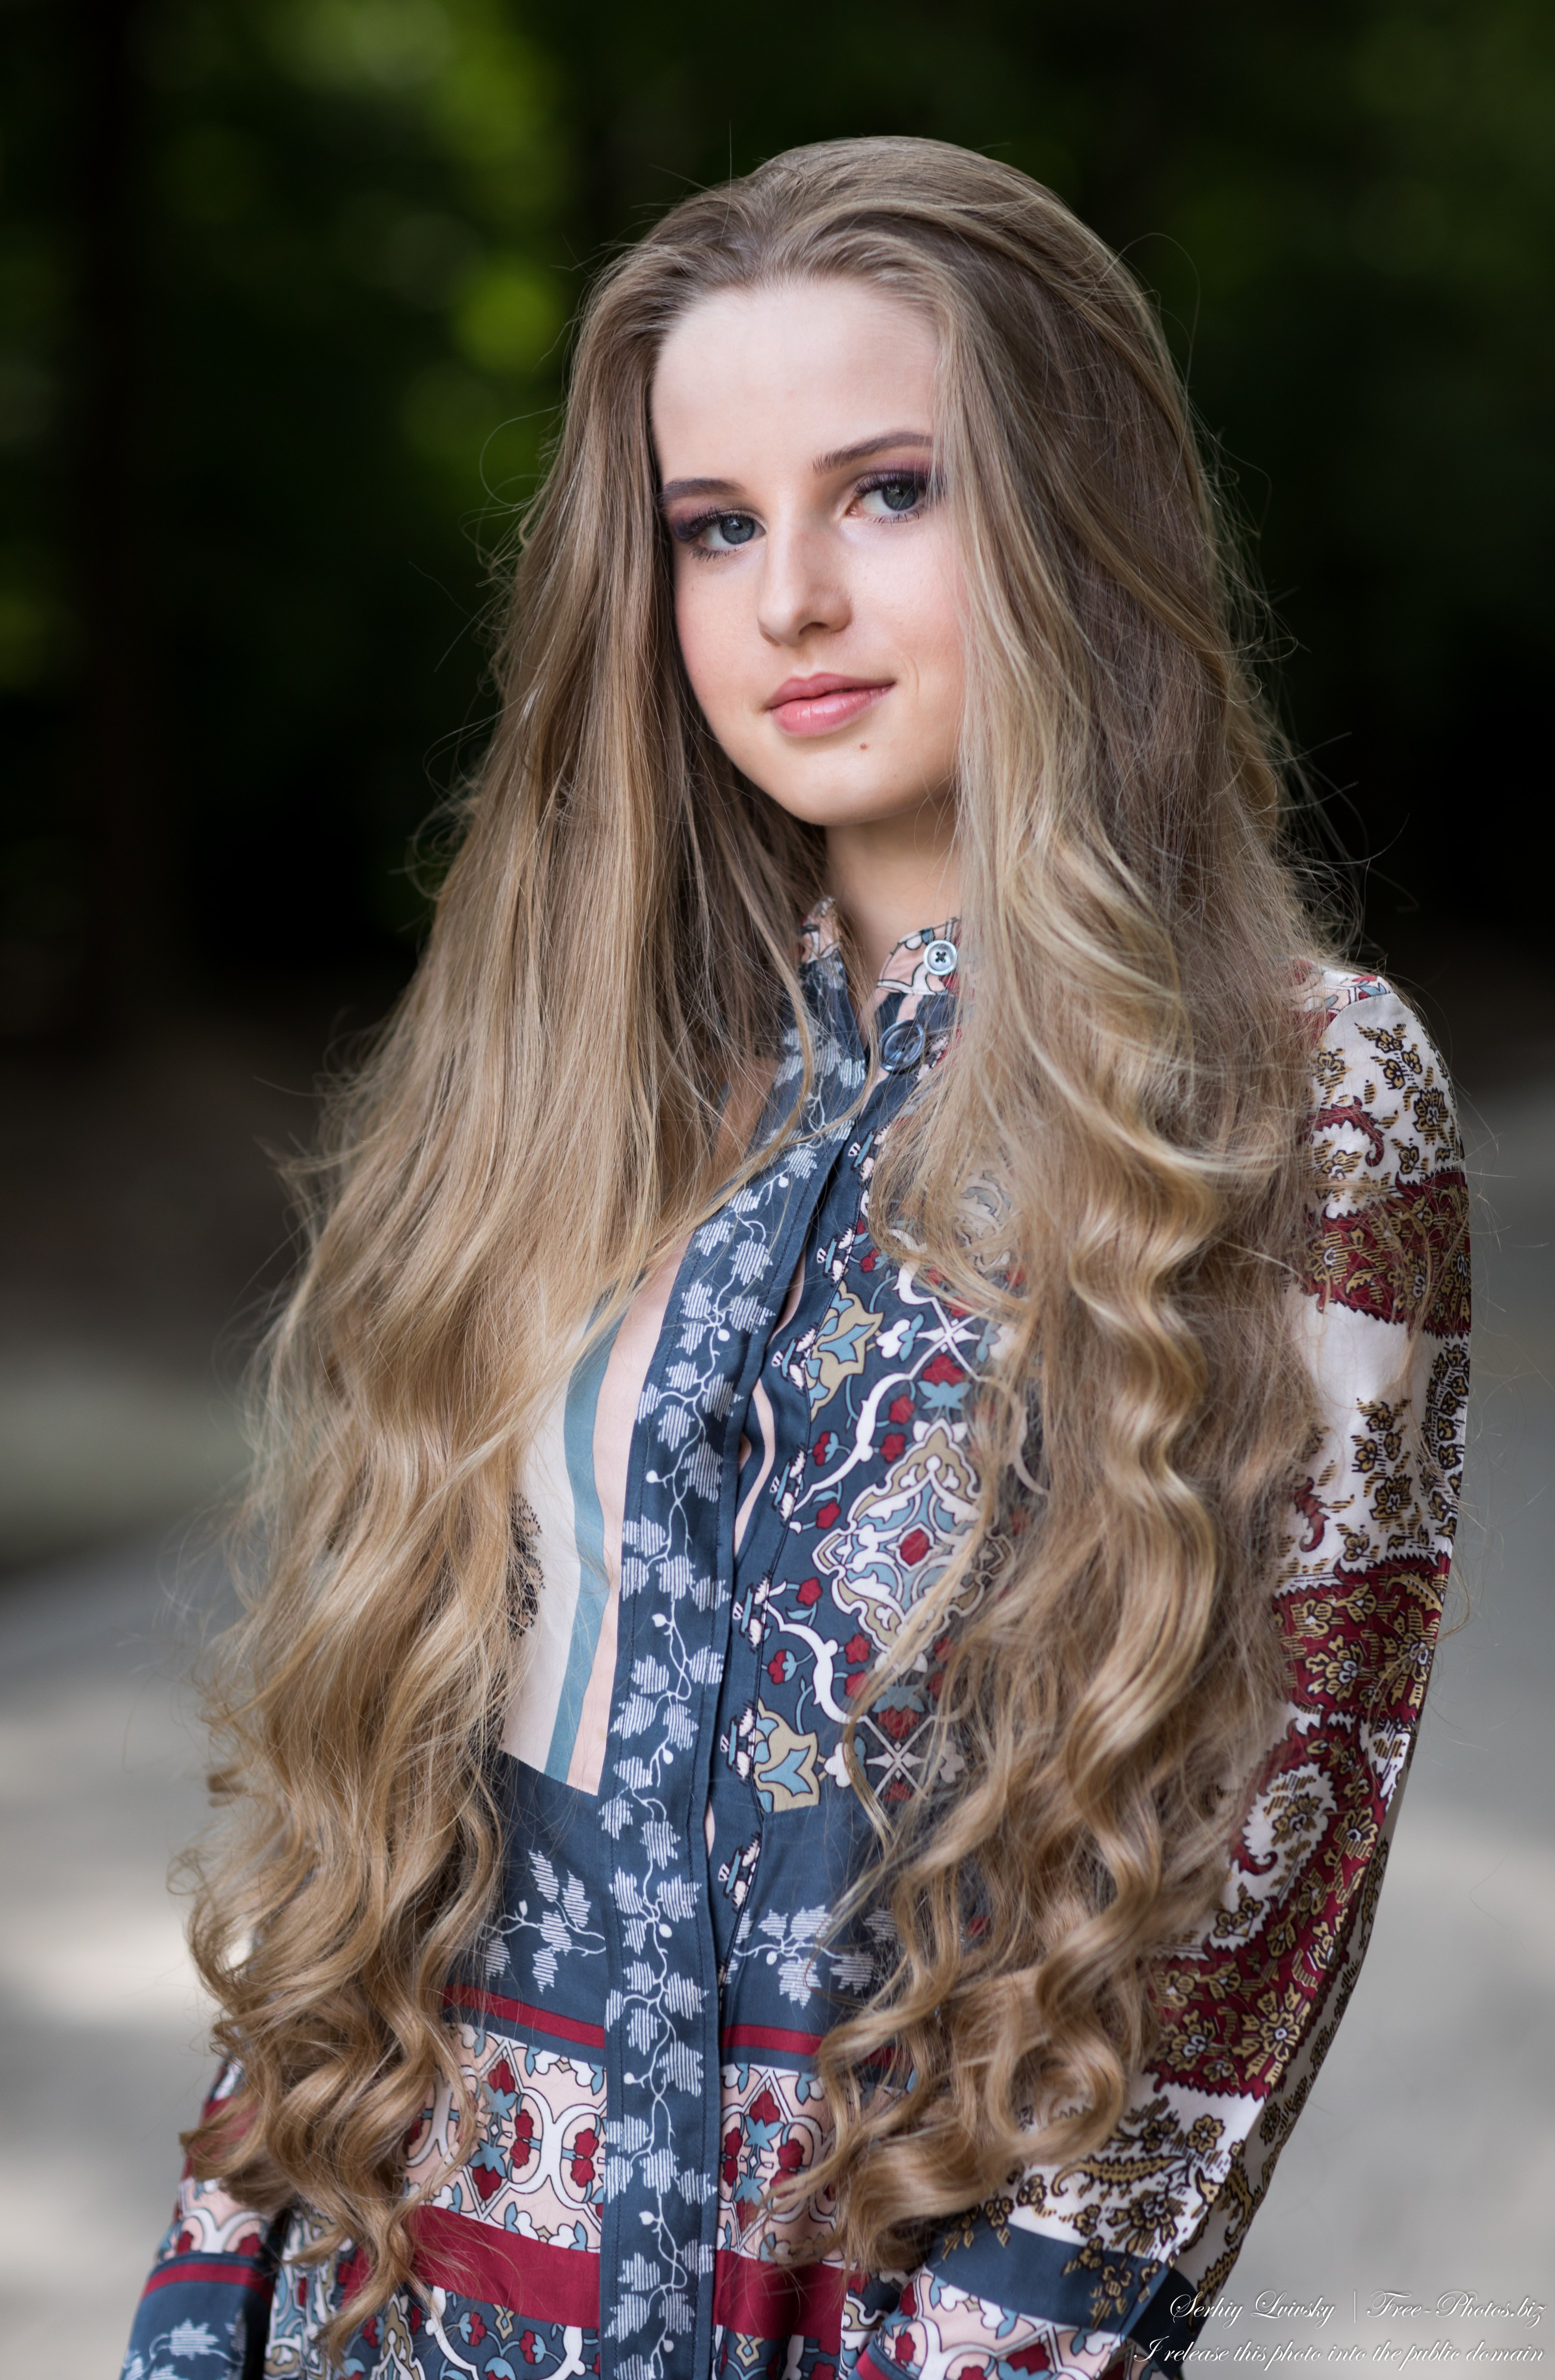 Diana - an 18-year-old natural blonde girl photographed by Serhiy Lvivsky in July 2020, picture 24